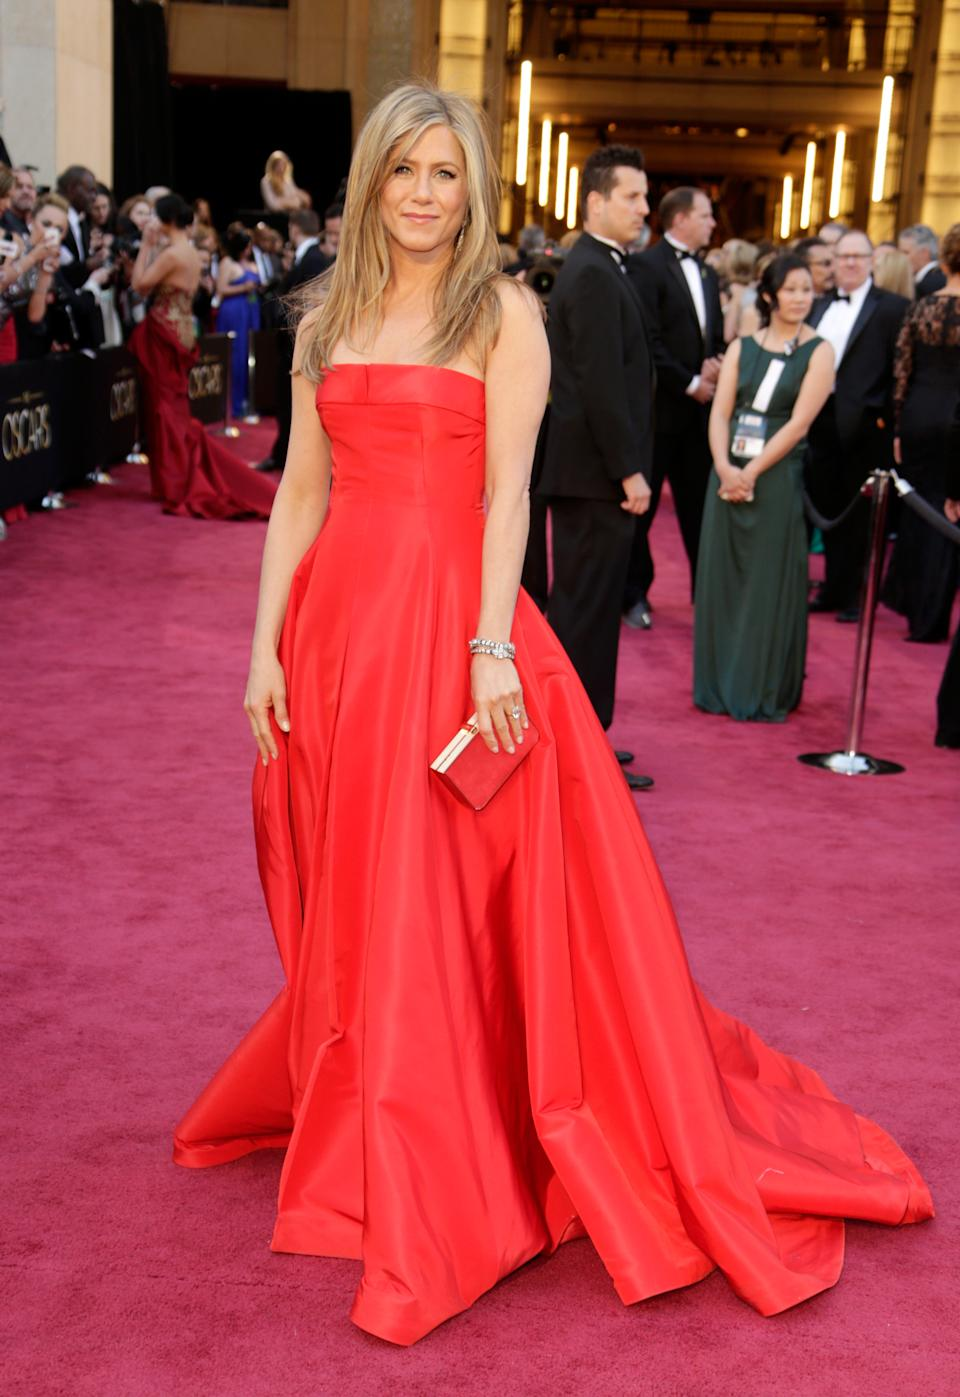 The 2013 Academy Awards called for the ultimate in red carpet glamour: Valentino couture.